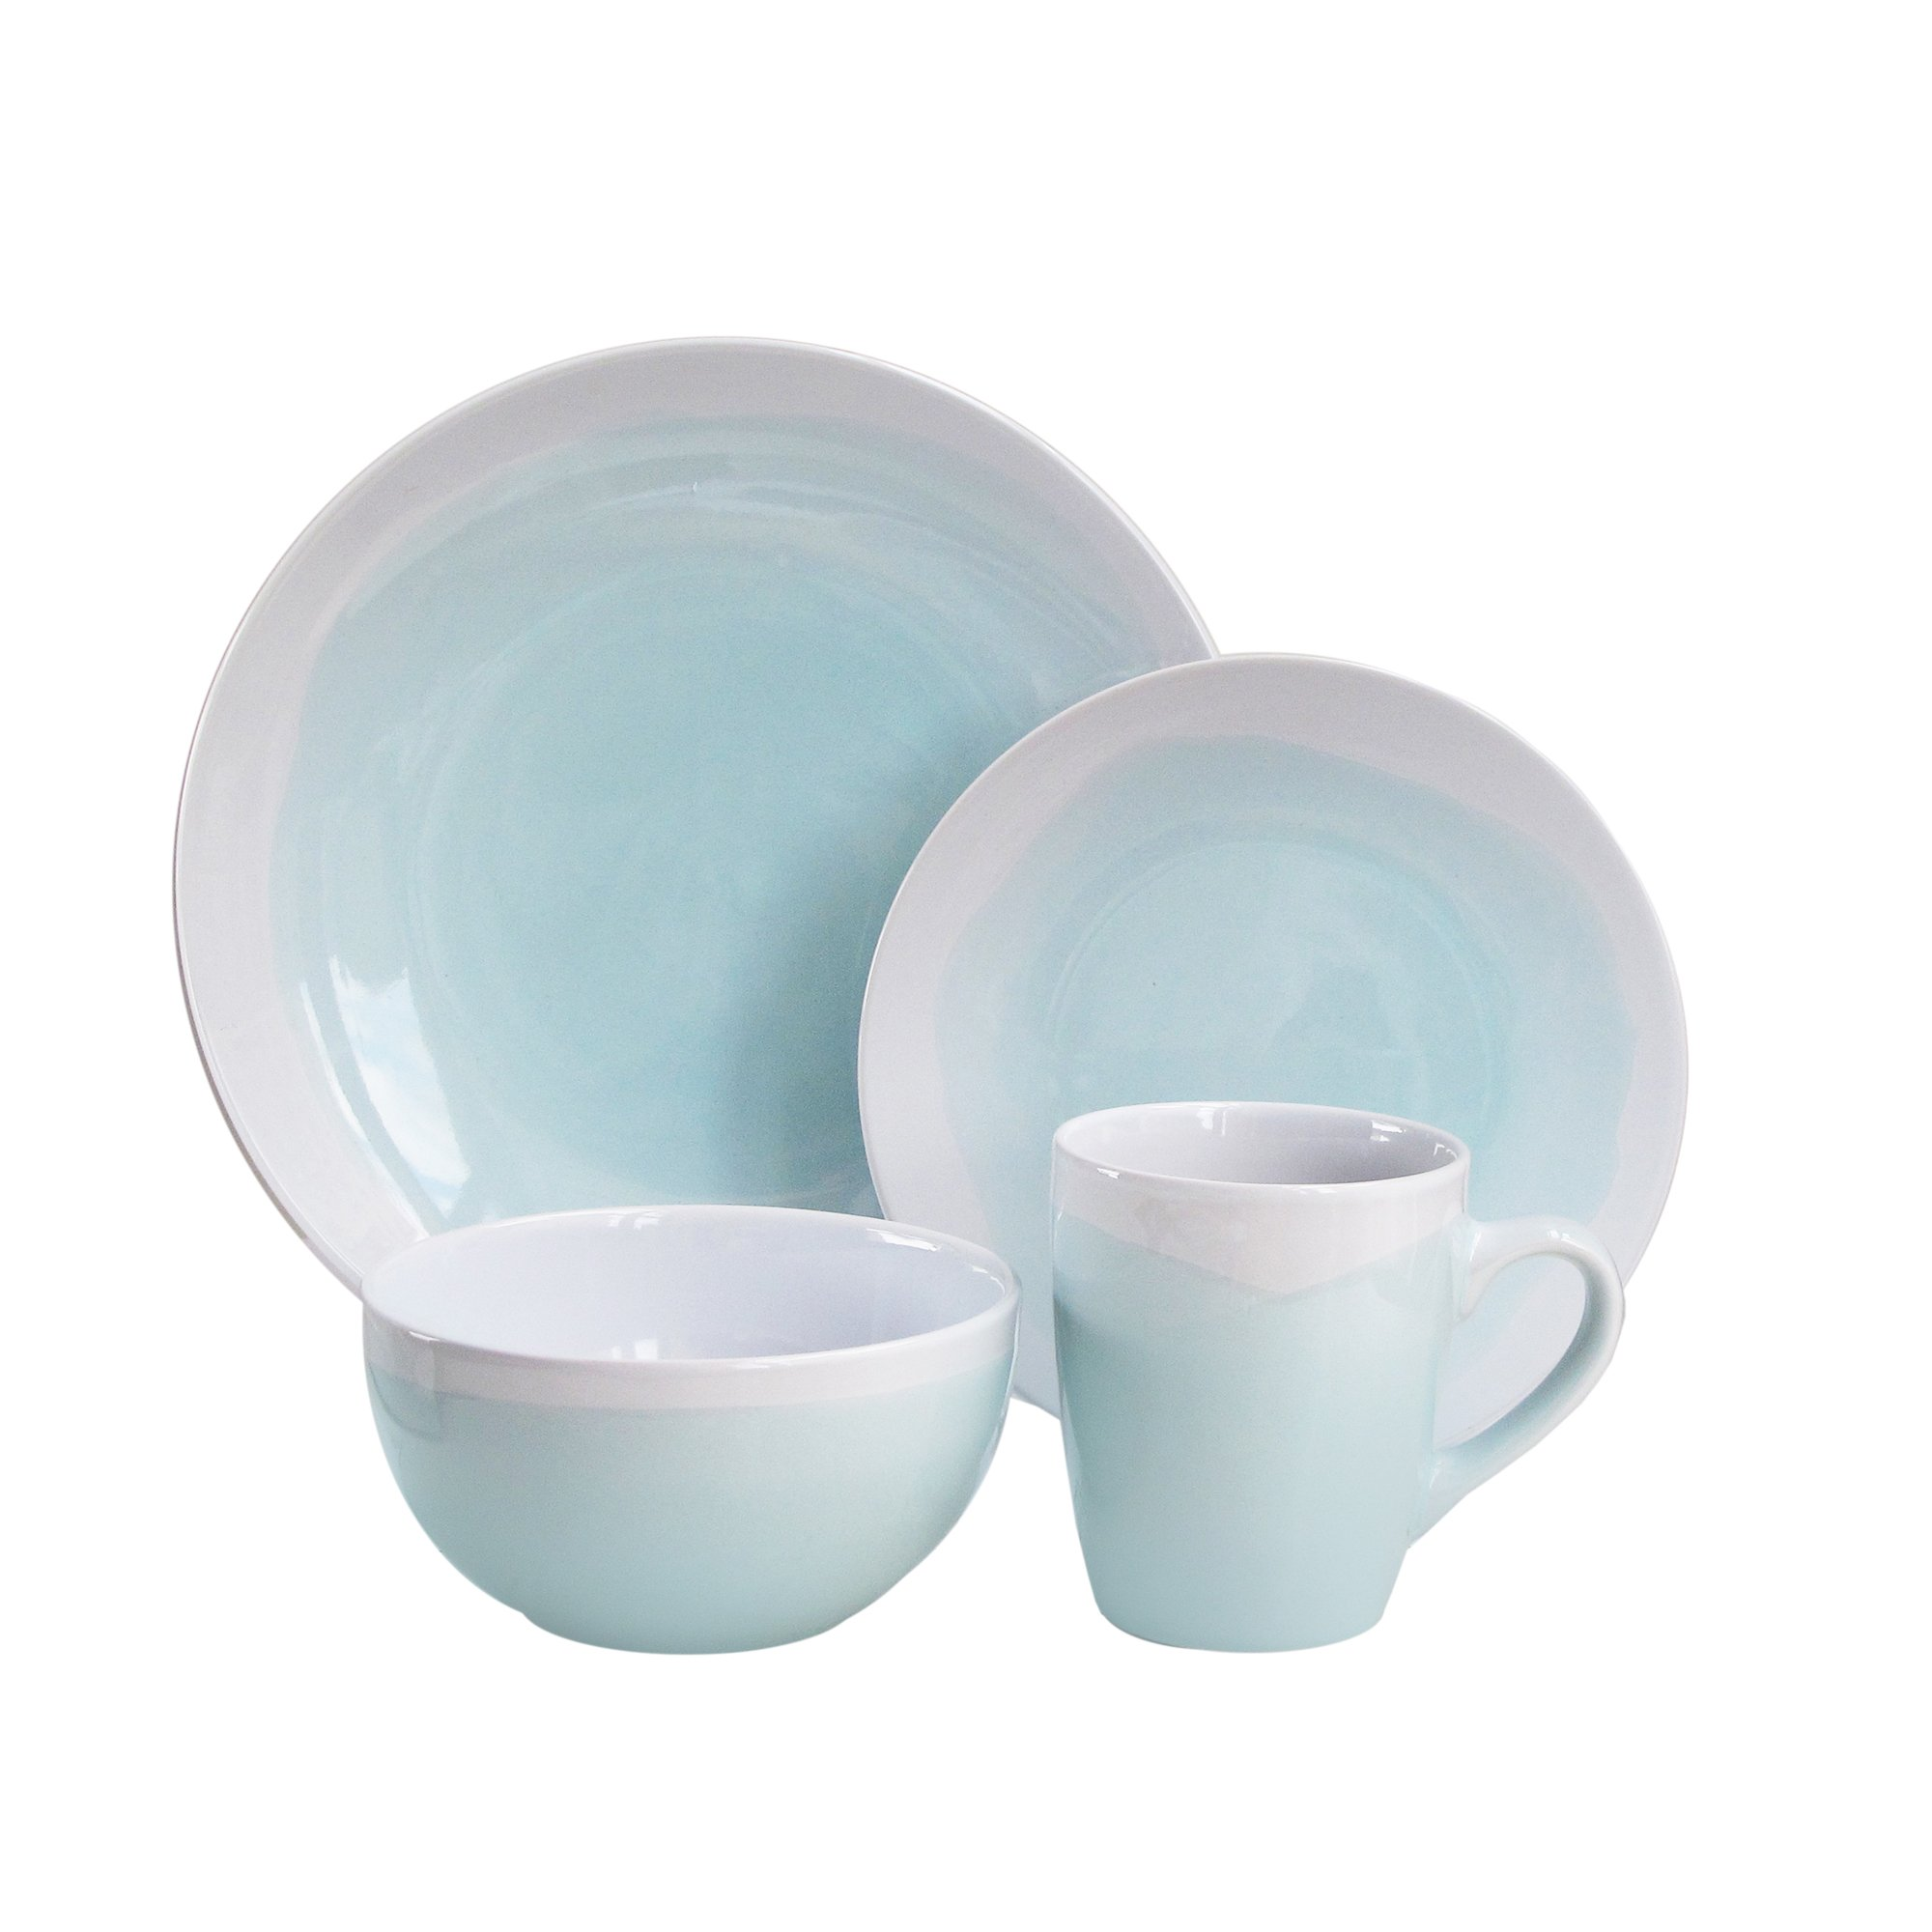 American Atelier 6692-16-RB Oasis Dinnerware Set (16 Piece), Mint/White